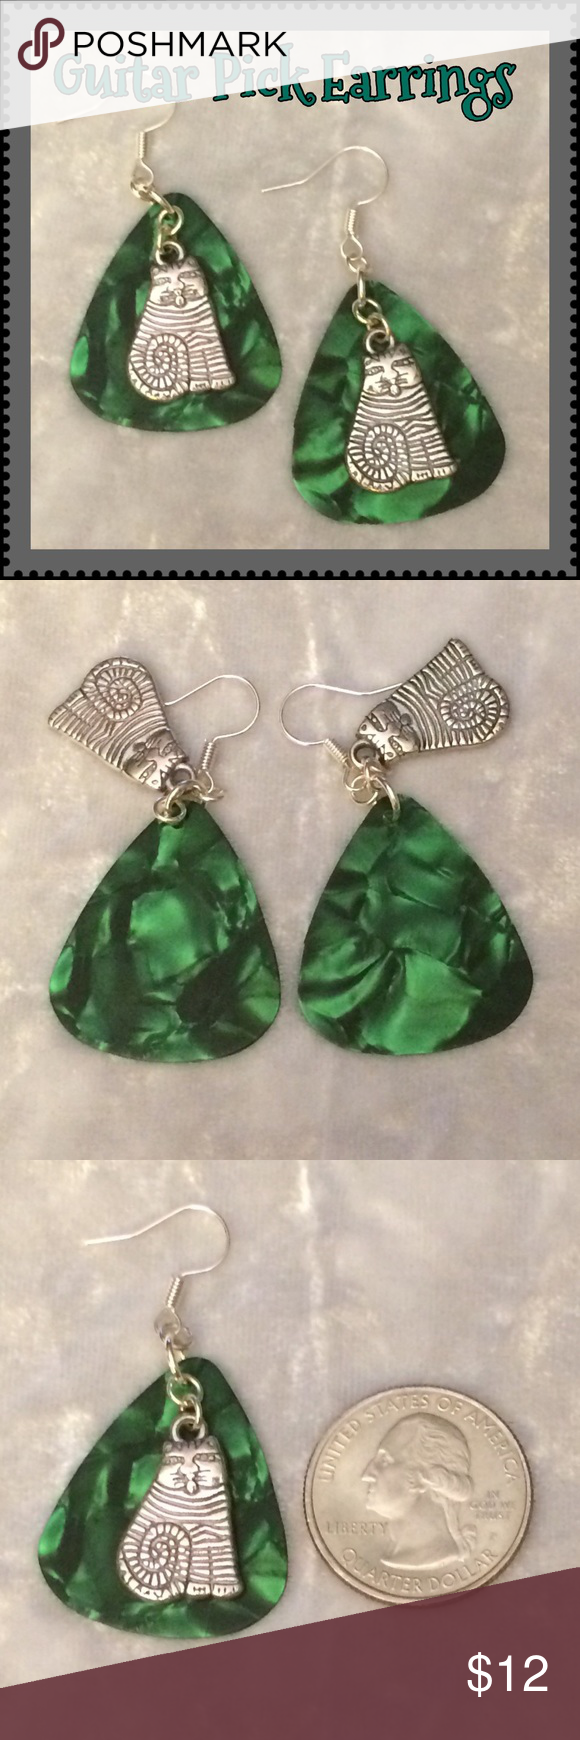 "Emerald Green Pearlescent Guitar Pick Cat Earrings These earrings are made with genuine green pearlescent celluloid guitar picks, Tibetan antique silver cat charms & silver-plated ear wires & rings. 2"" including ear wire*. Handcrafted by me.   *Can be replaced w/ Sterling Silver for an additional $1. Comment for custom listing.  Jewelry items priced firm as a single purchase due to material cost & PM fees.   Bundle special on guitar pick/choker/charm jewelry ONLY: Any 2 items for $20. Make…"